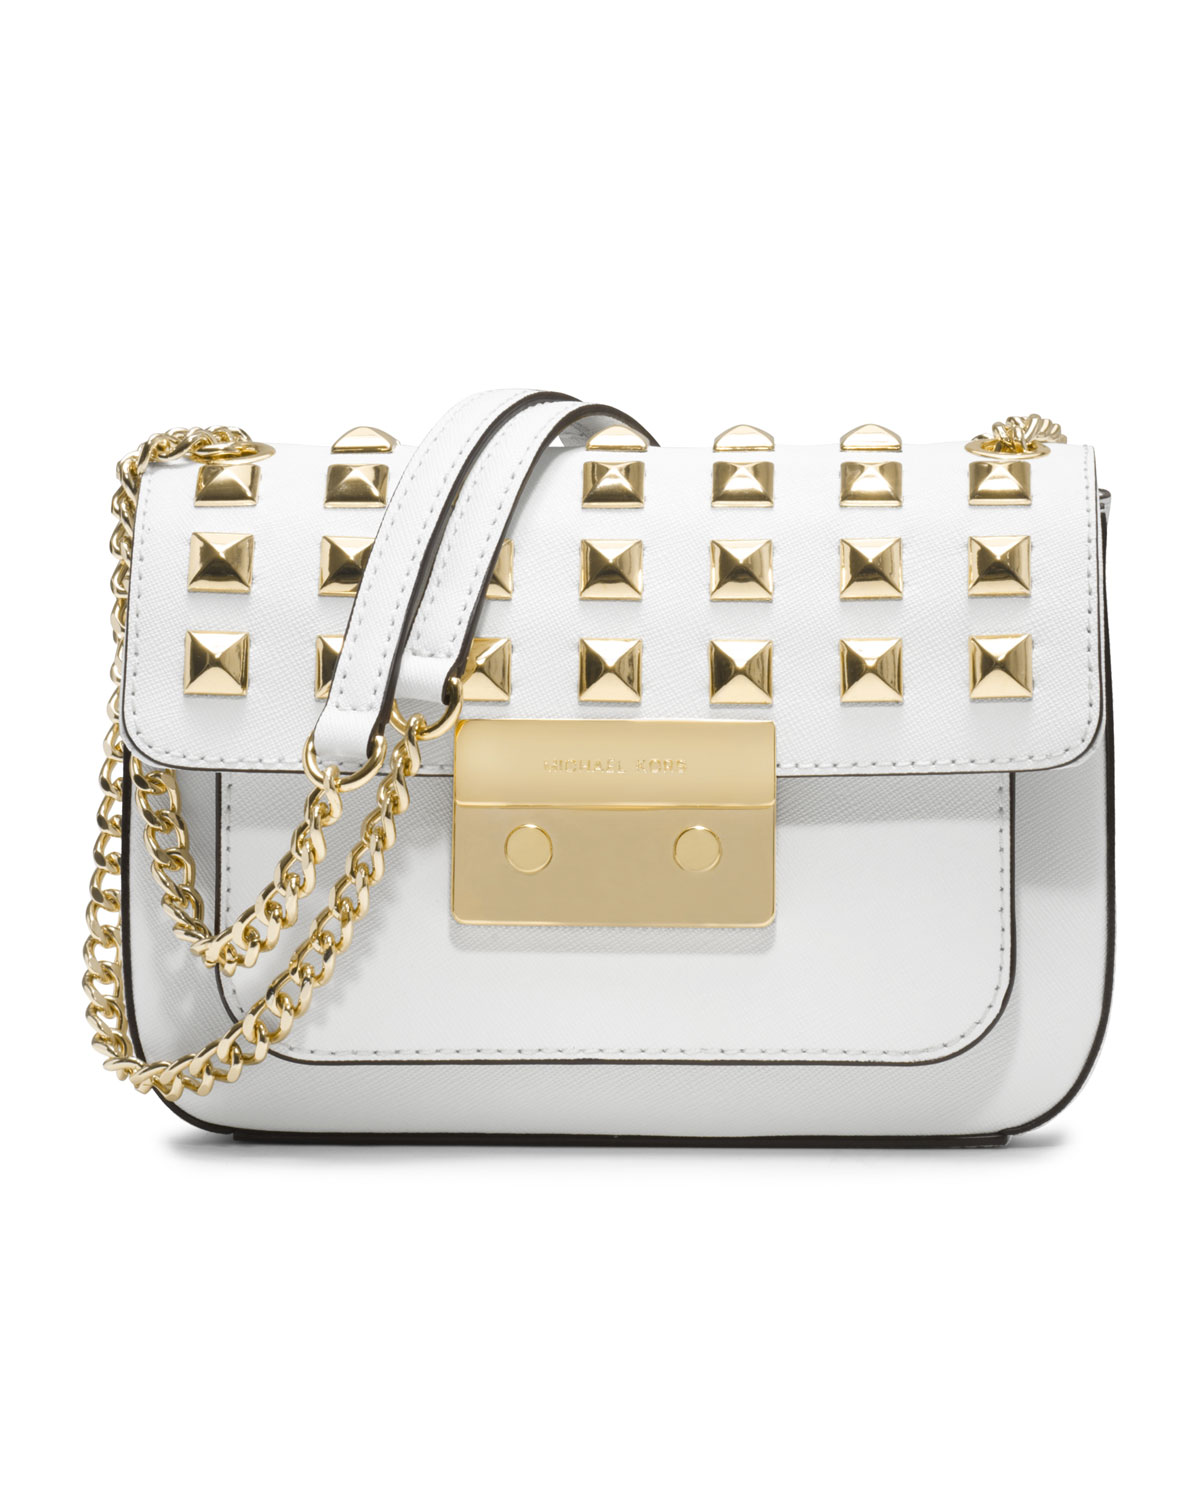 ccc9cbbe6d32 Lyst - Michael Kors Small Sloan Pyramidstud Saffiano Flap Bag in White